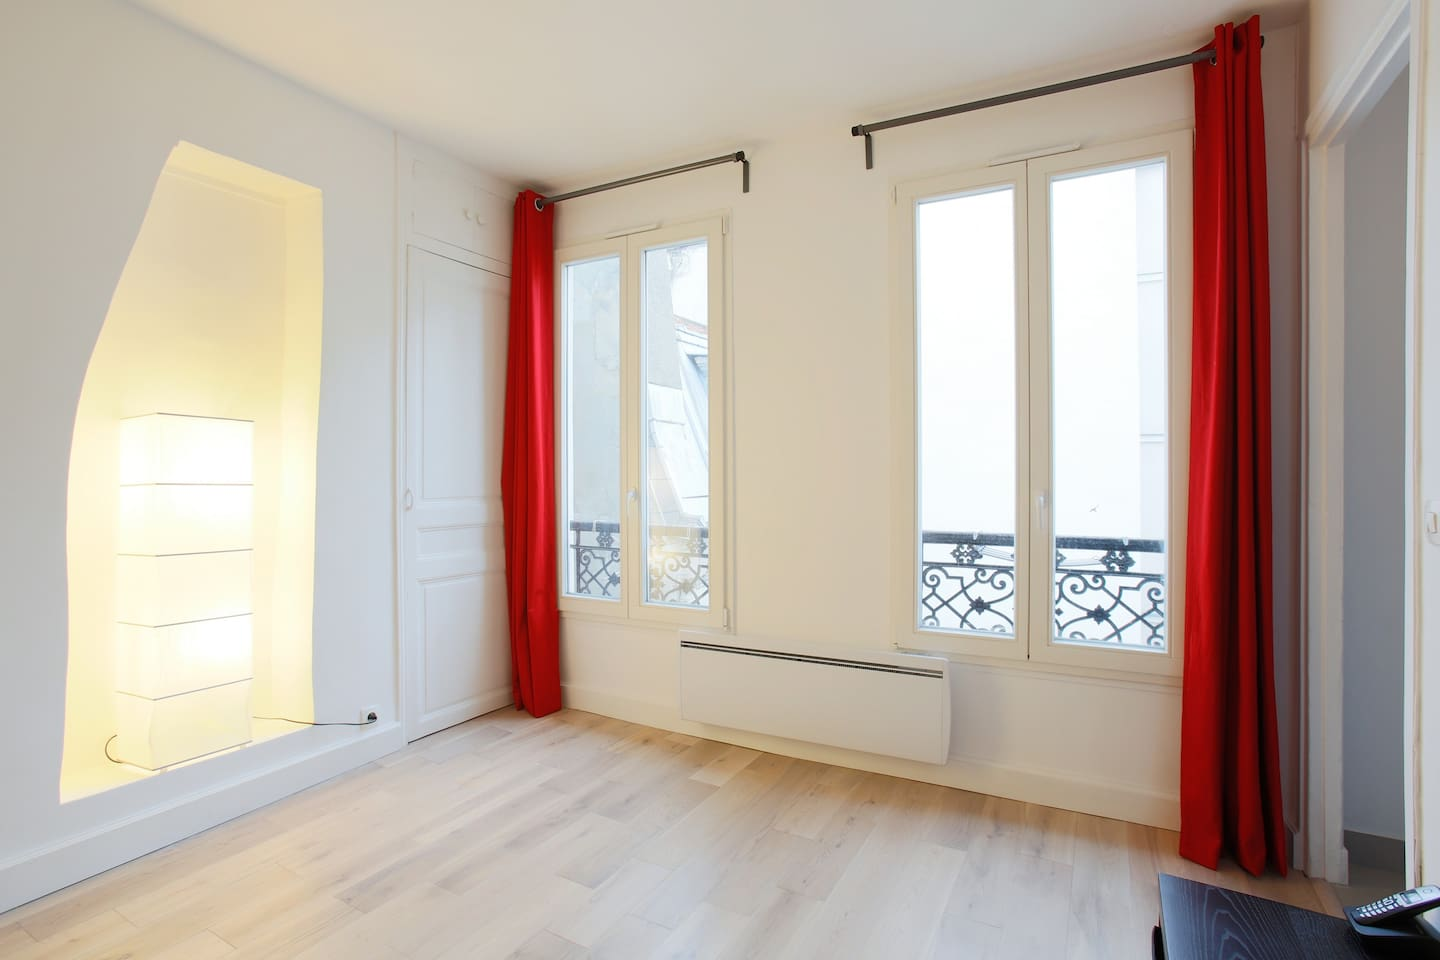 Bedroom : 2 big windows for more sunlight. A big heater between the 2 windows for a warm winter.